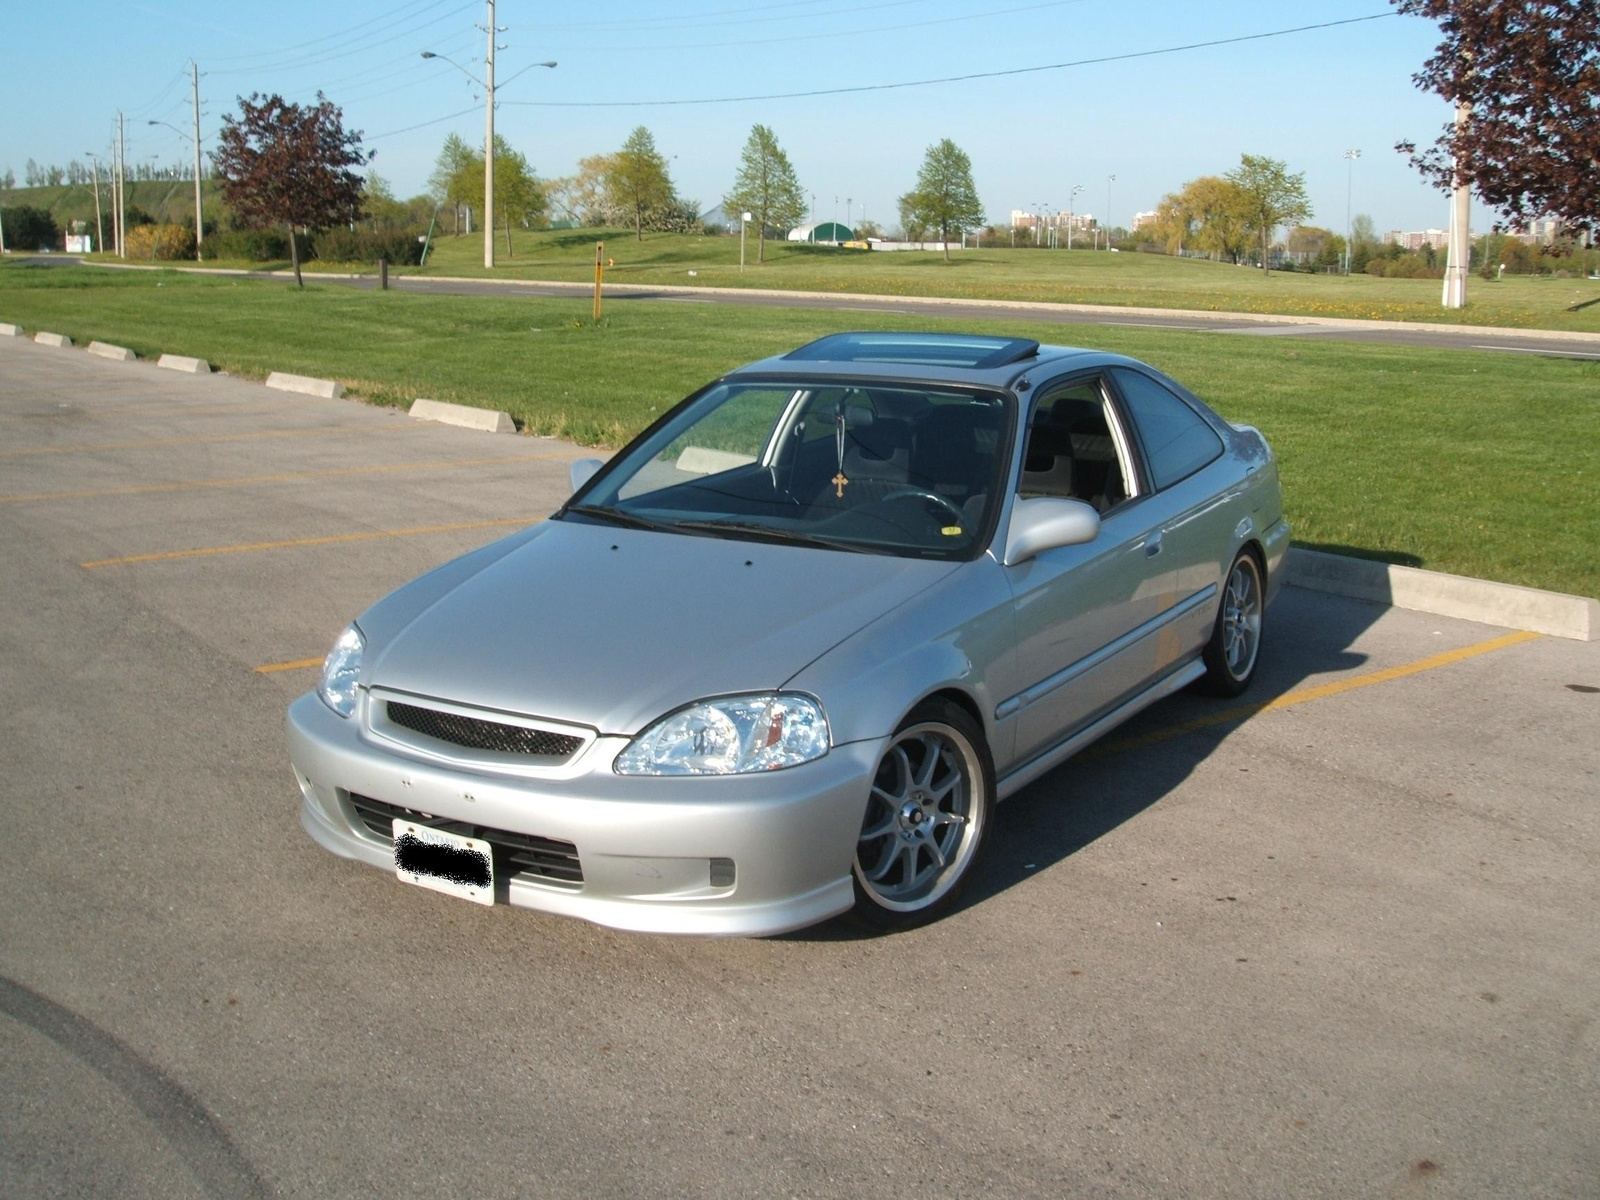 2000 honda civic si - photo #29